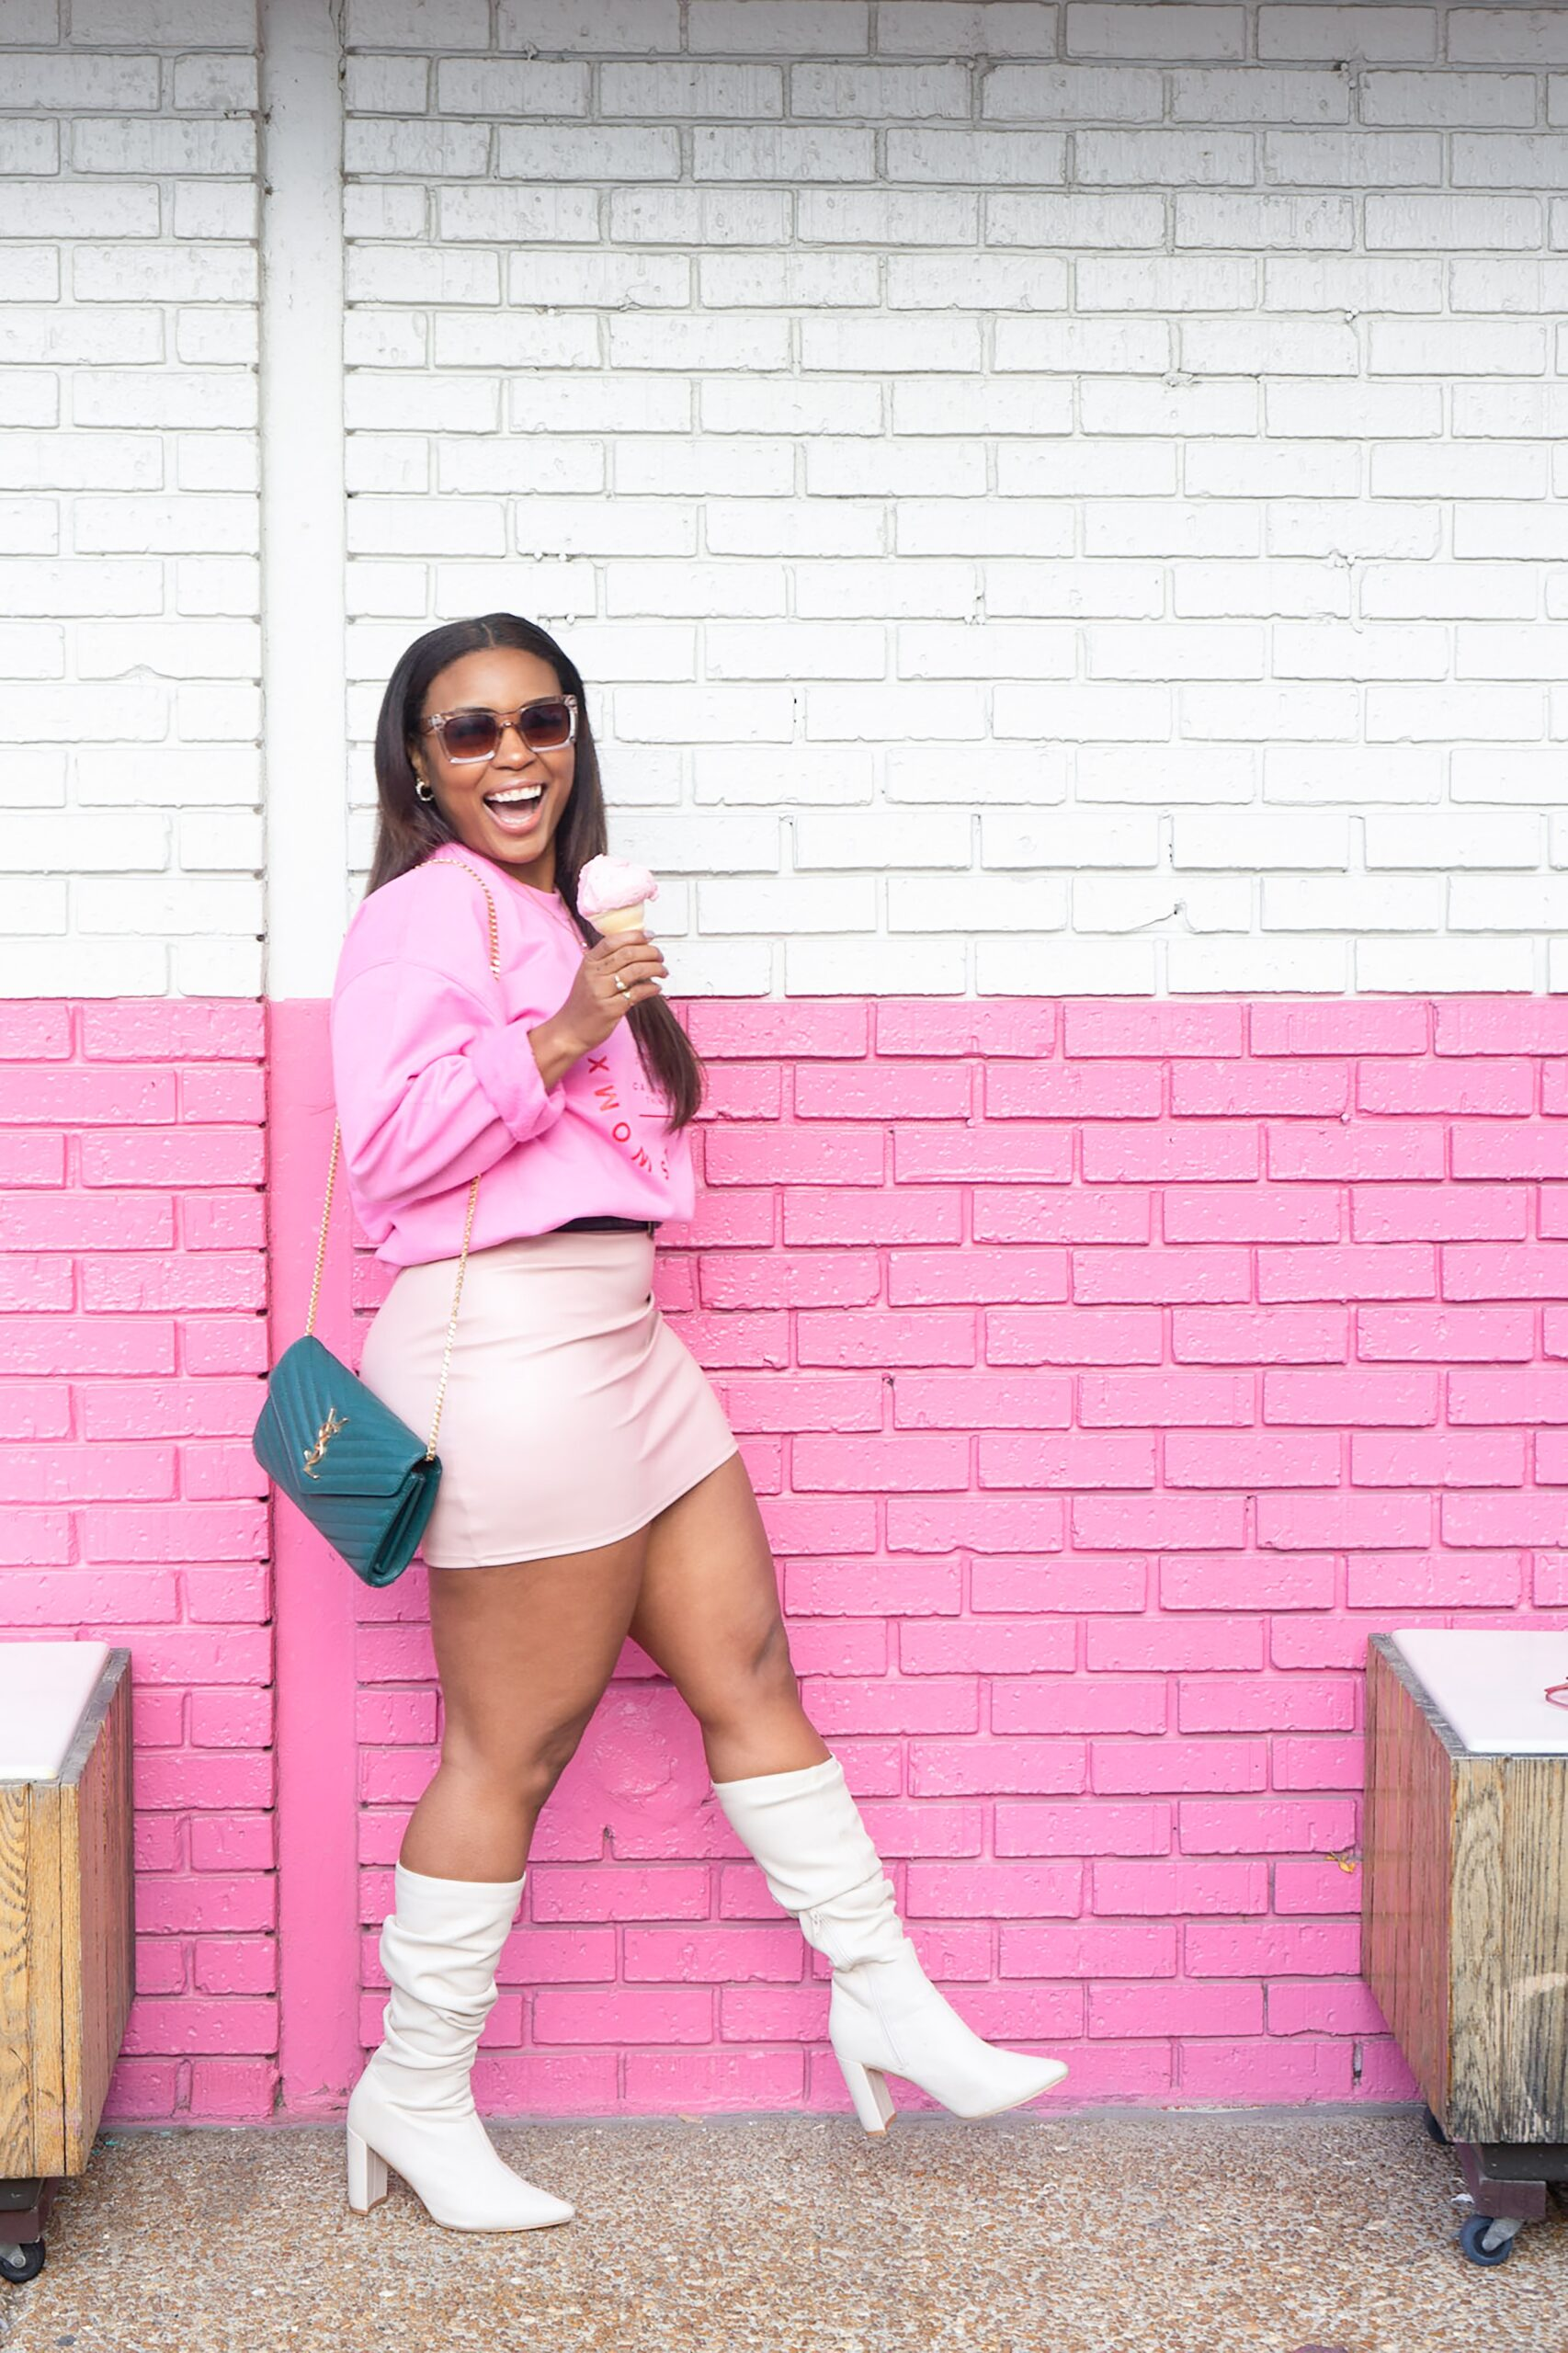 5 Reasons Why You Should Embrace Your Curvy Figure